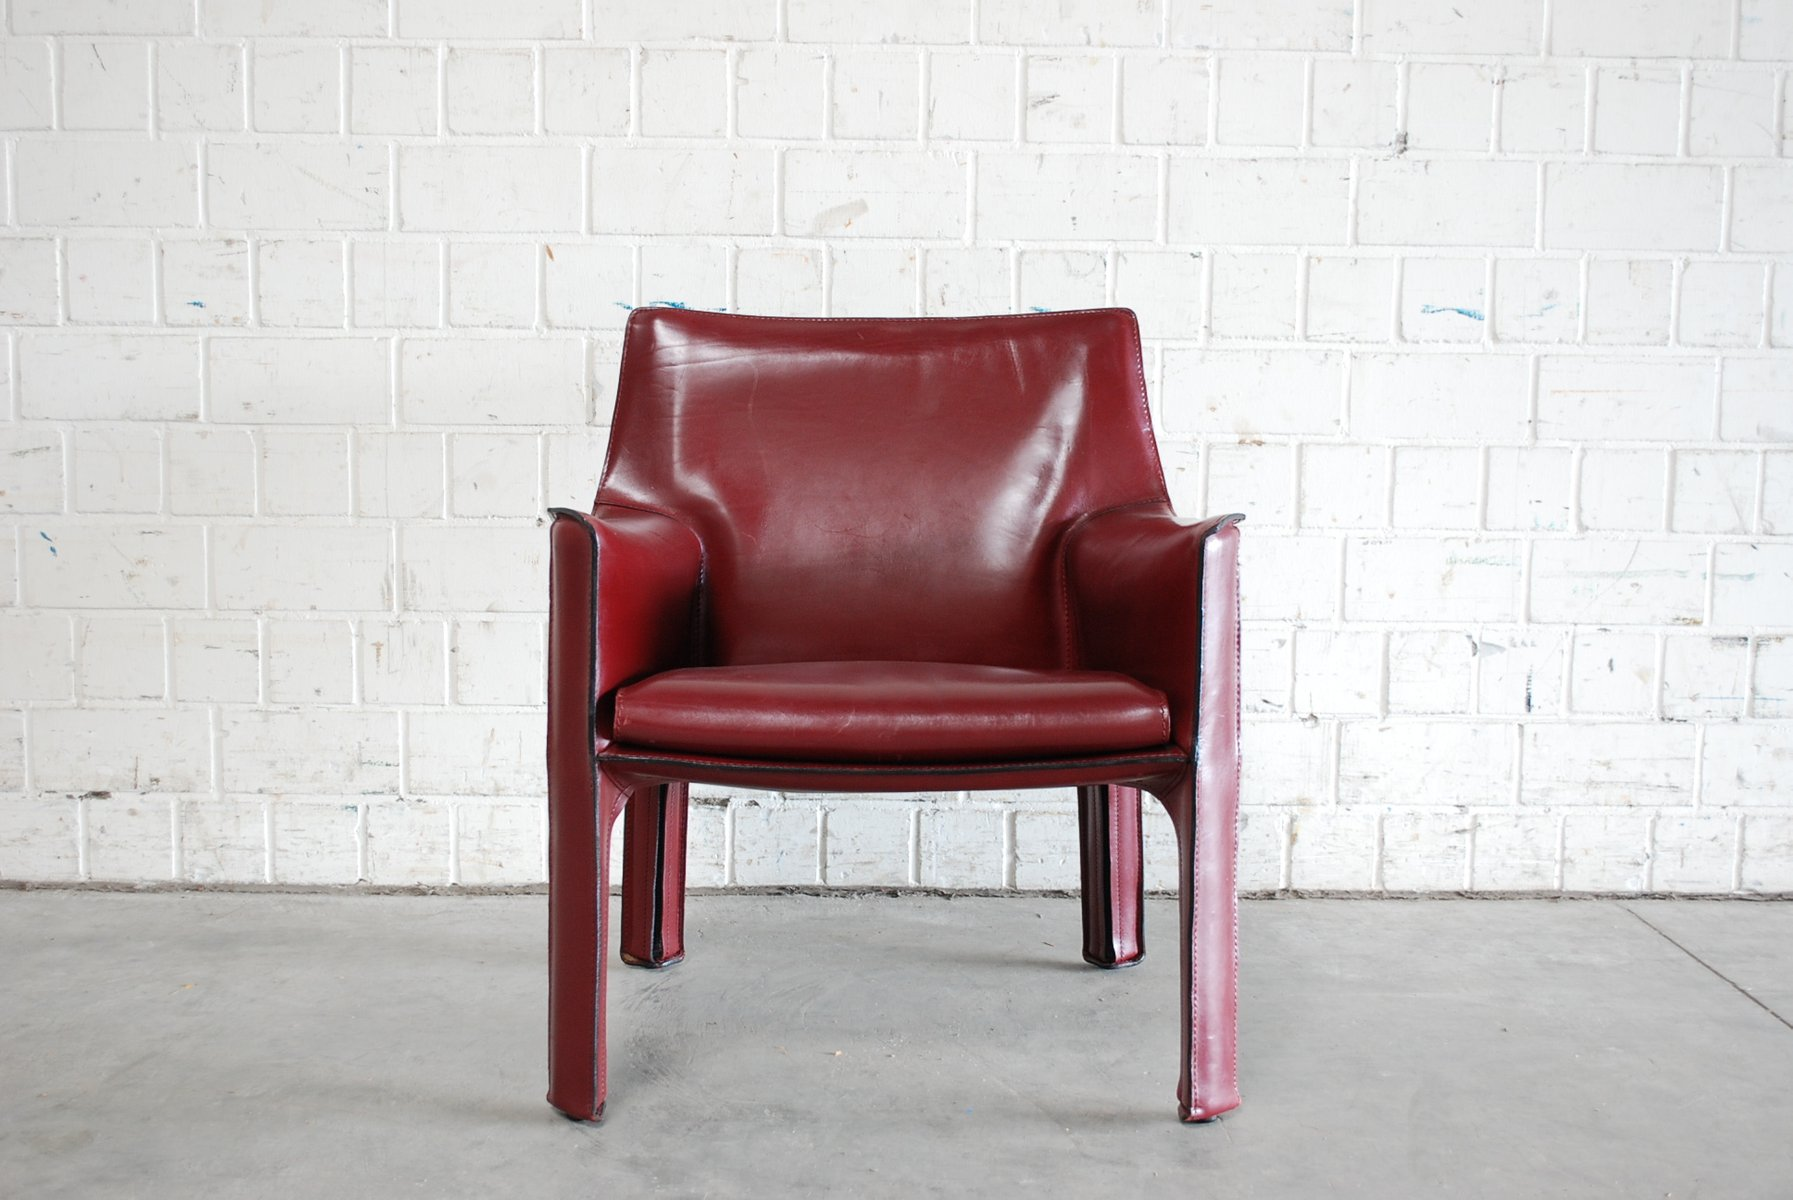 Bordeaux Red Cab 414 Lounge Chair by Mario Bellini for Cassina for – Mario Bellini Chair